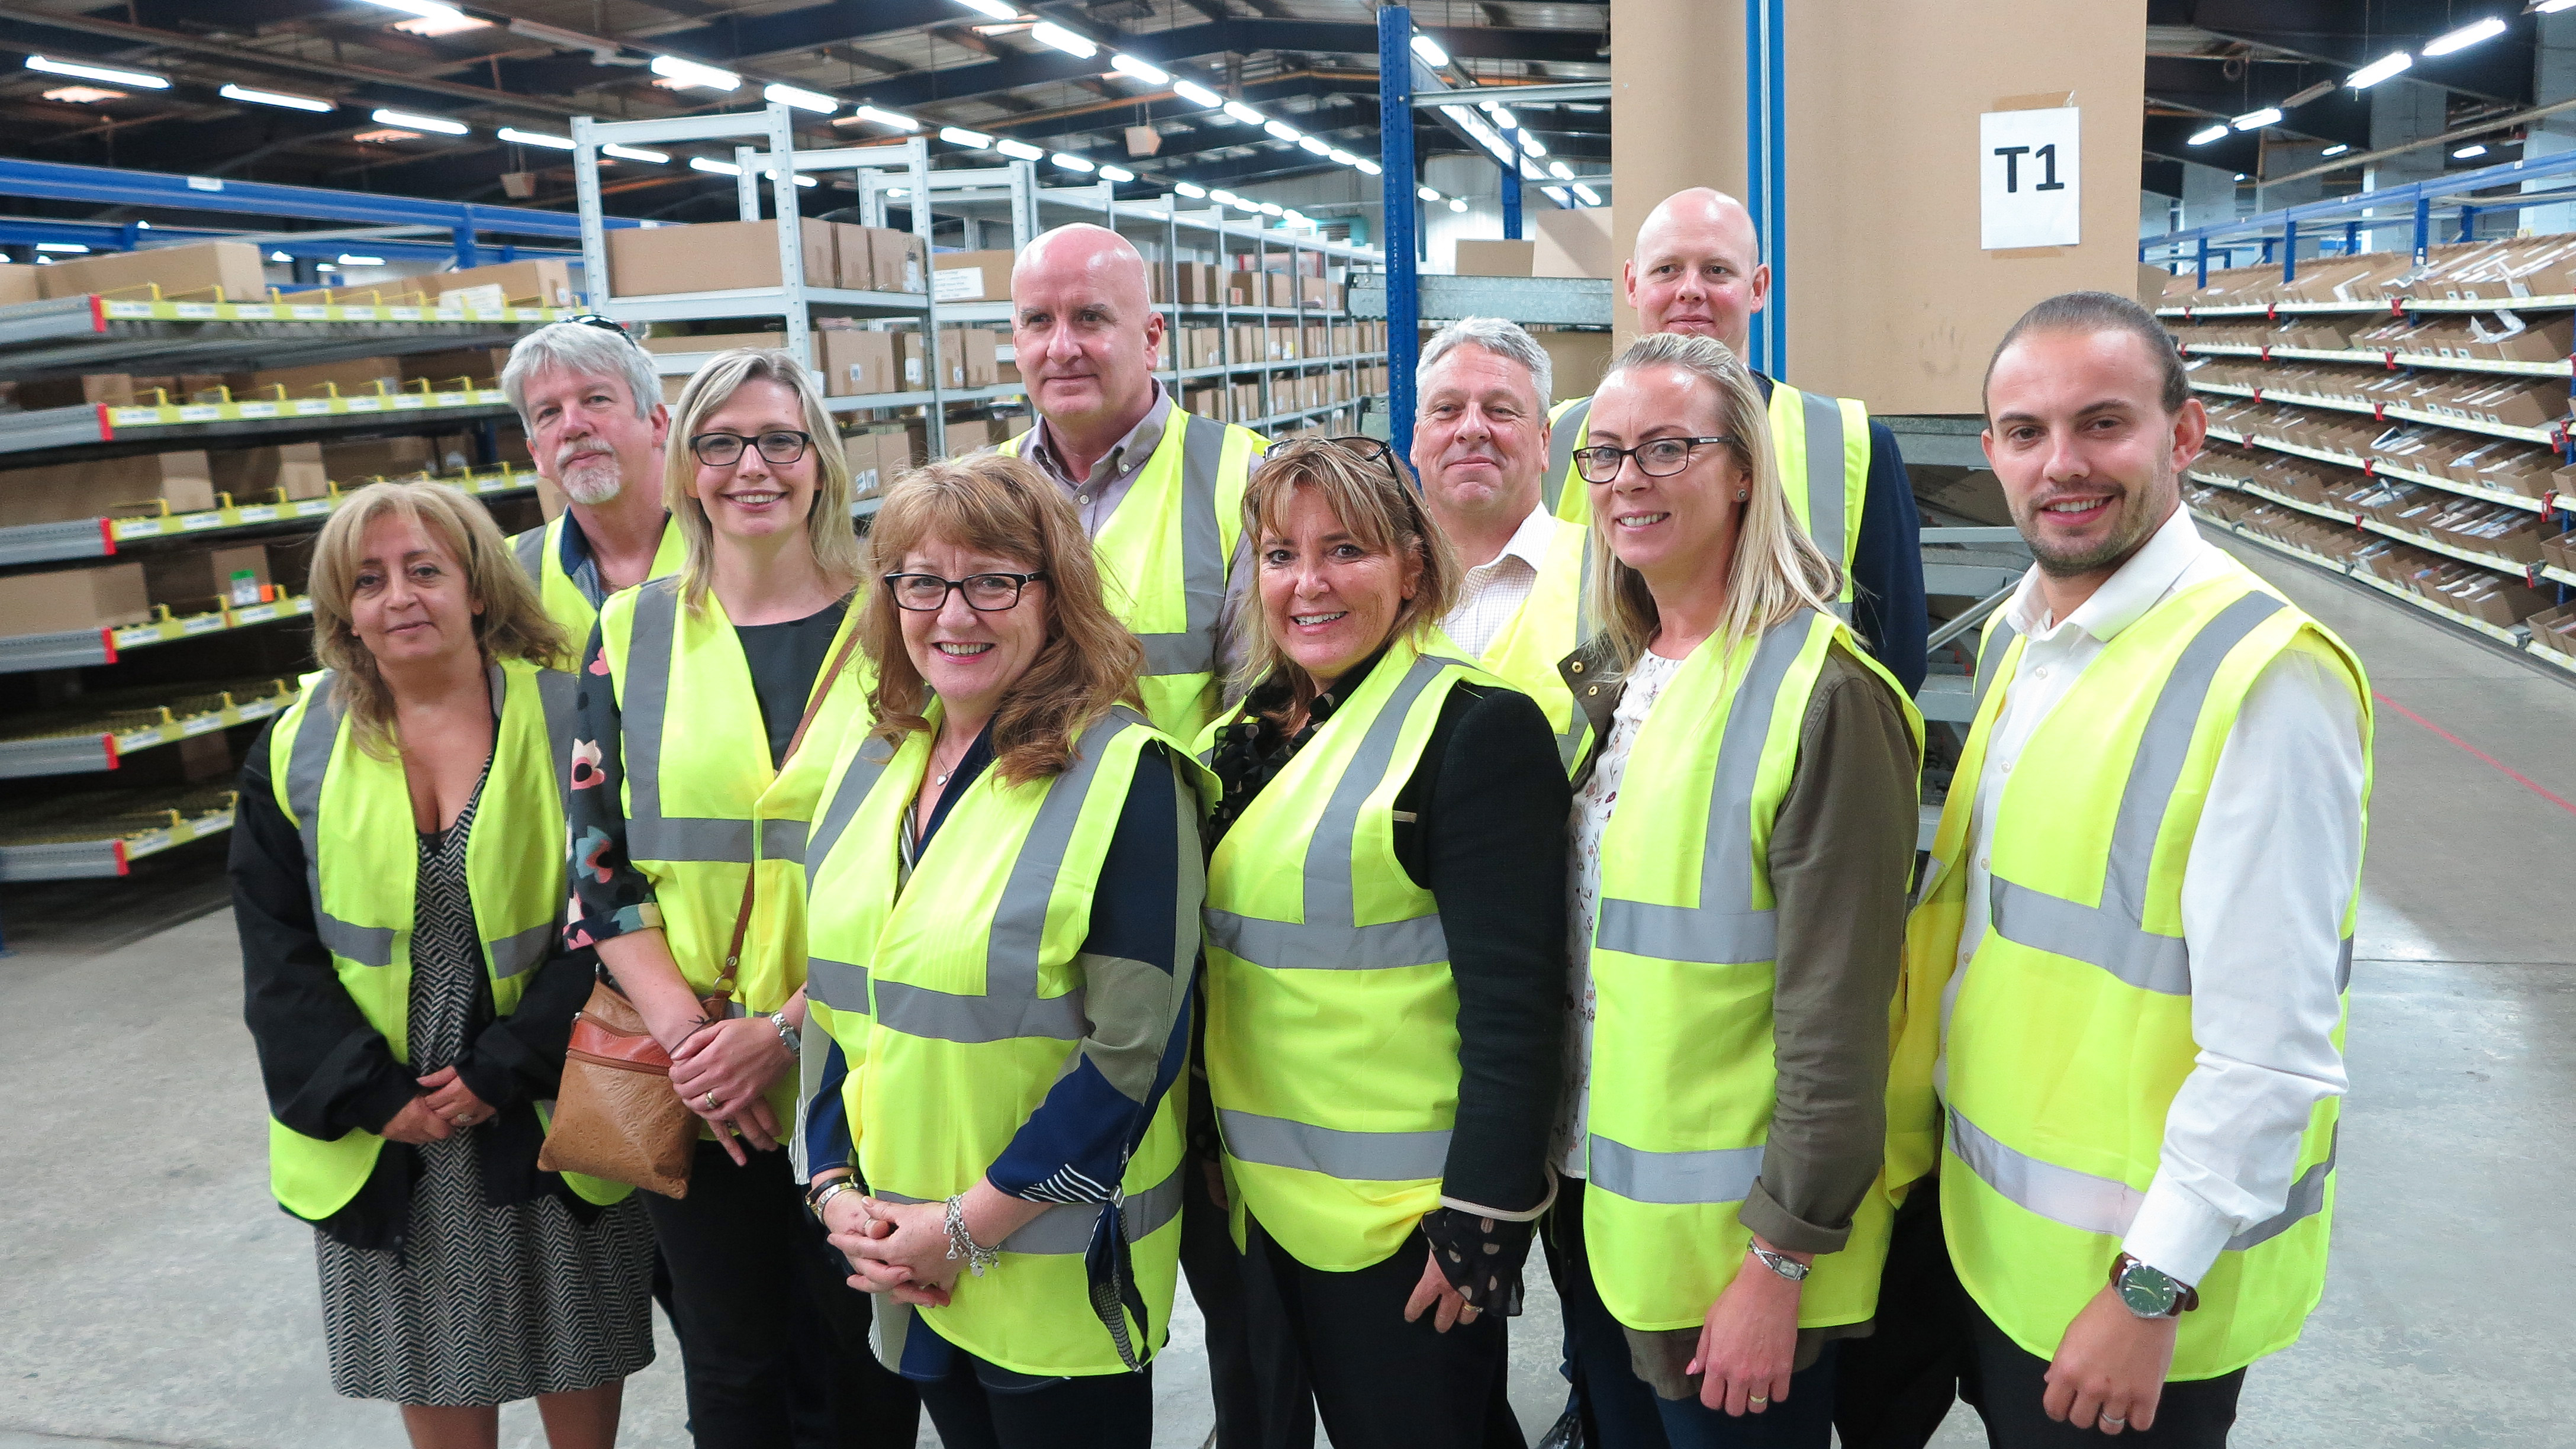 Independent retailers were treated to a 'behind the scenes' tour of its Dewsbury set-up by UKG as part of yesterday's Customer Retail Forum. (Right-left) Sonny Farr (UKG), Darren Cave (UKG), Louise Parker (Daniels), UKG's Ken Roberts, Tracey McMinn, Terry Davis, Jayne Griffiths (Sentiments), Rachael Barnes (Dragonfly), Trevor Griffiths (Sentiments) and Rawda Jehanli (Boswells).